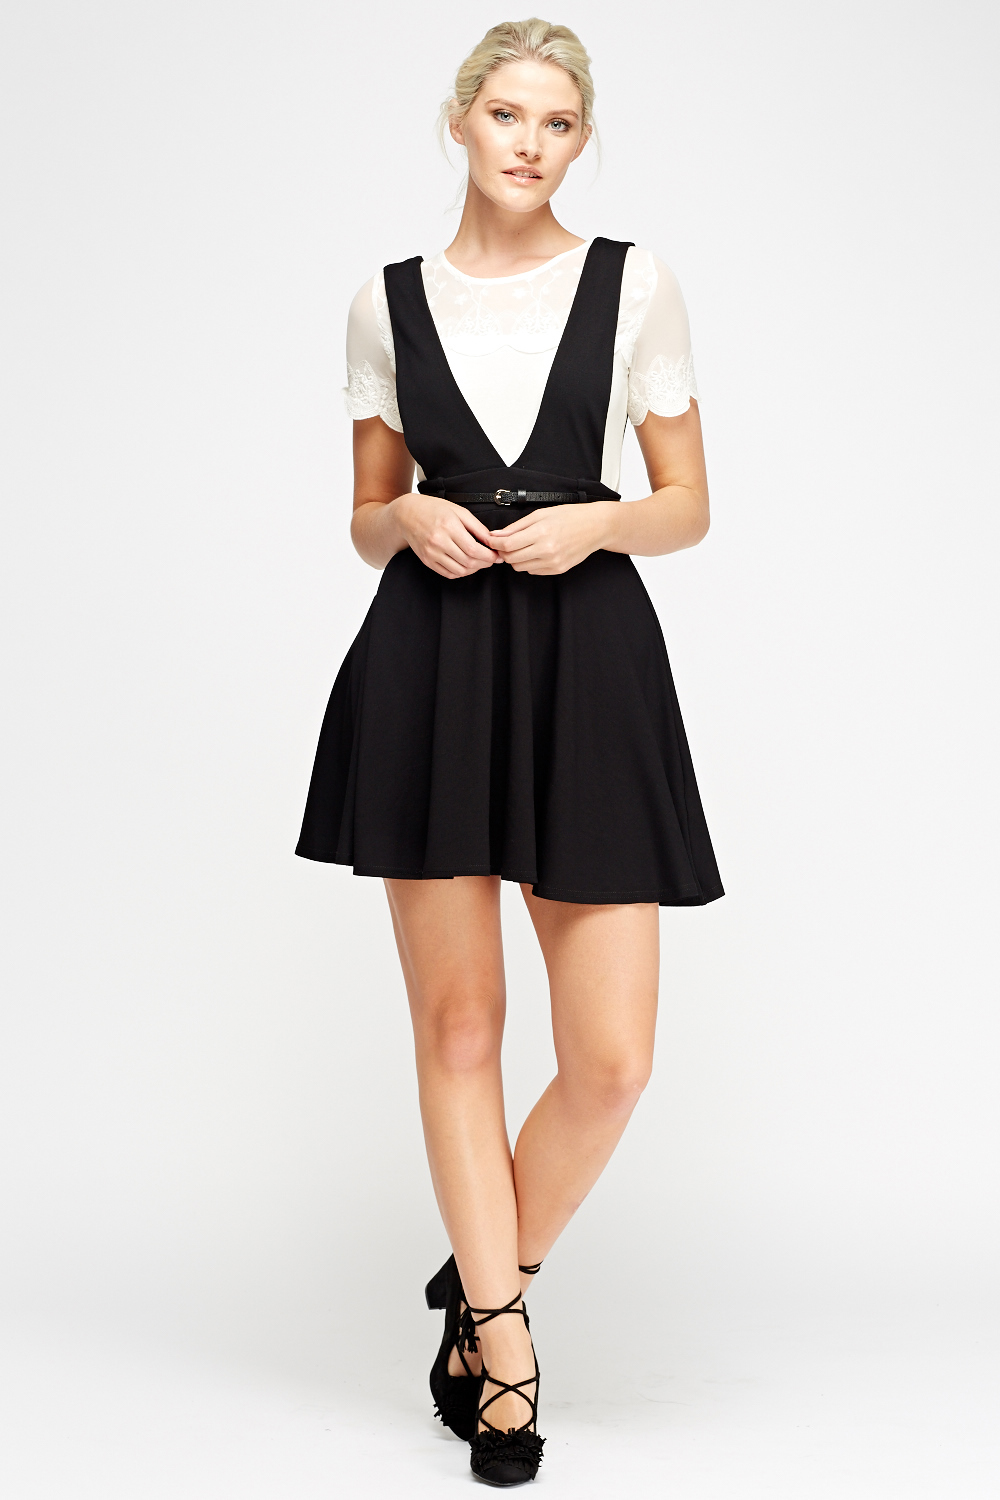 Shift Dress | Buy cheap Shift Dress for just £5 on ...